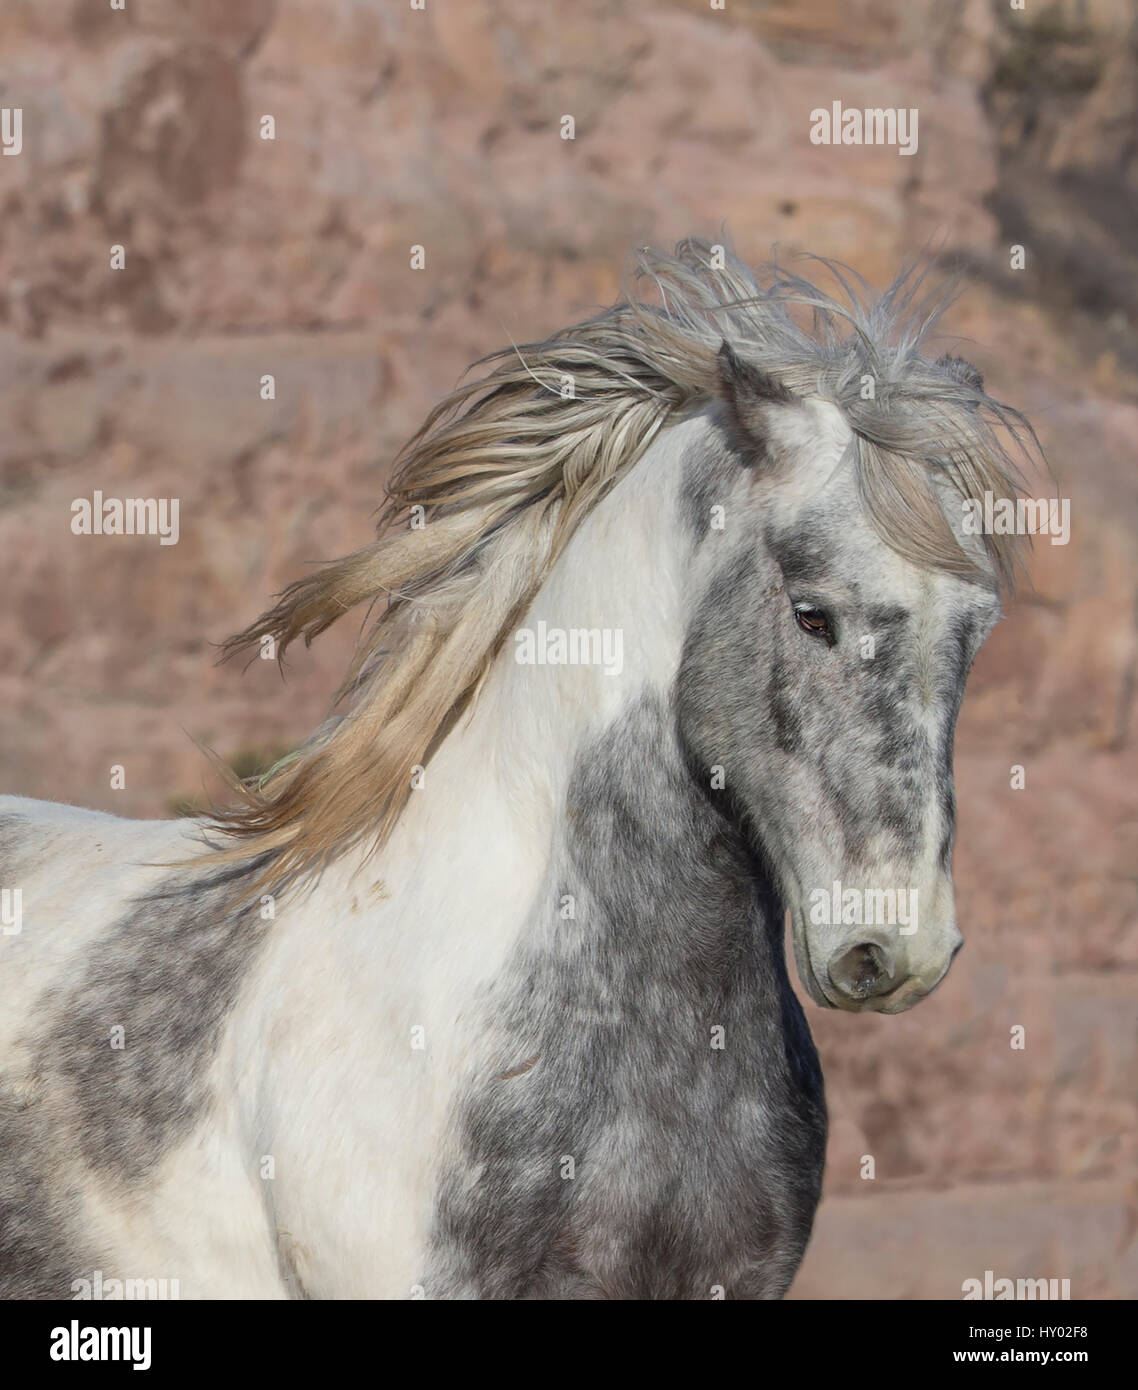 Head Portrait Of Wild Mustang Stallion Tossing His Mane While Stock Photo Alamy